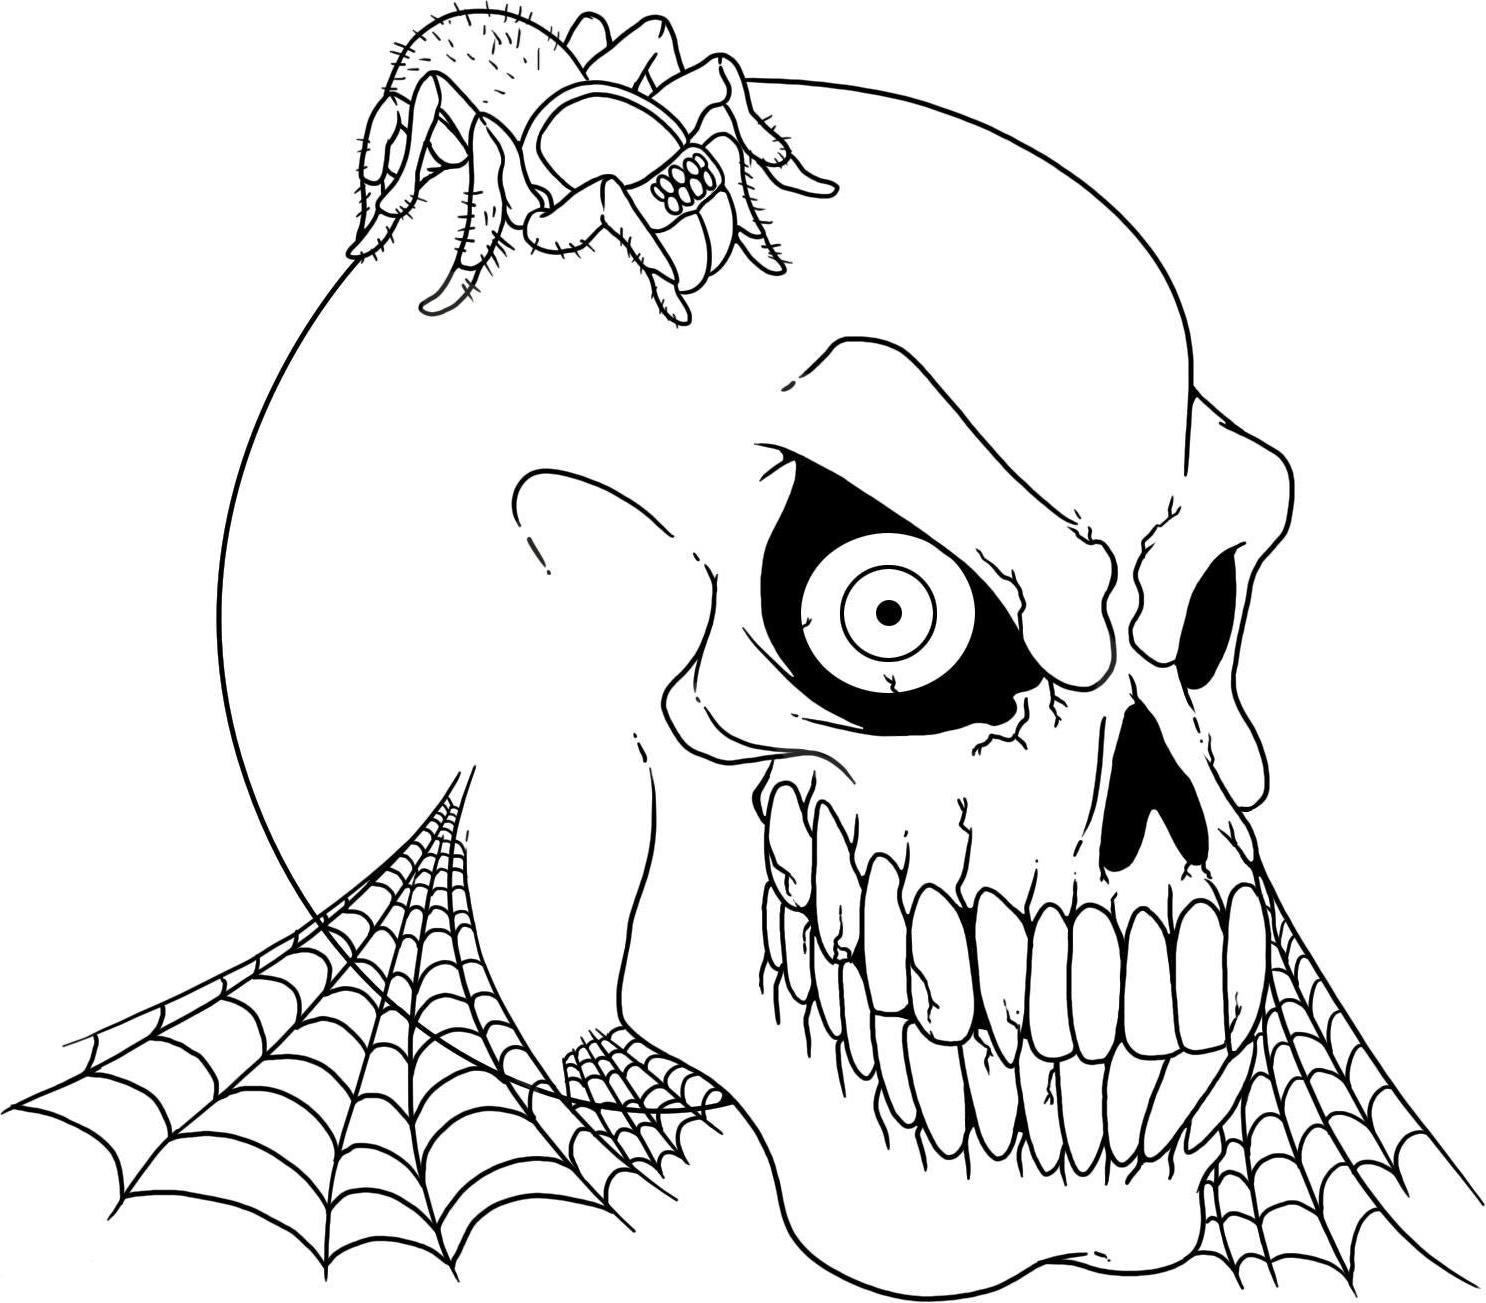 Scary coloring #4, Download drawings